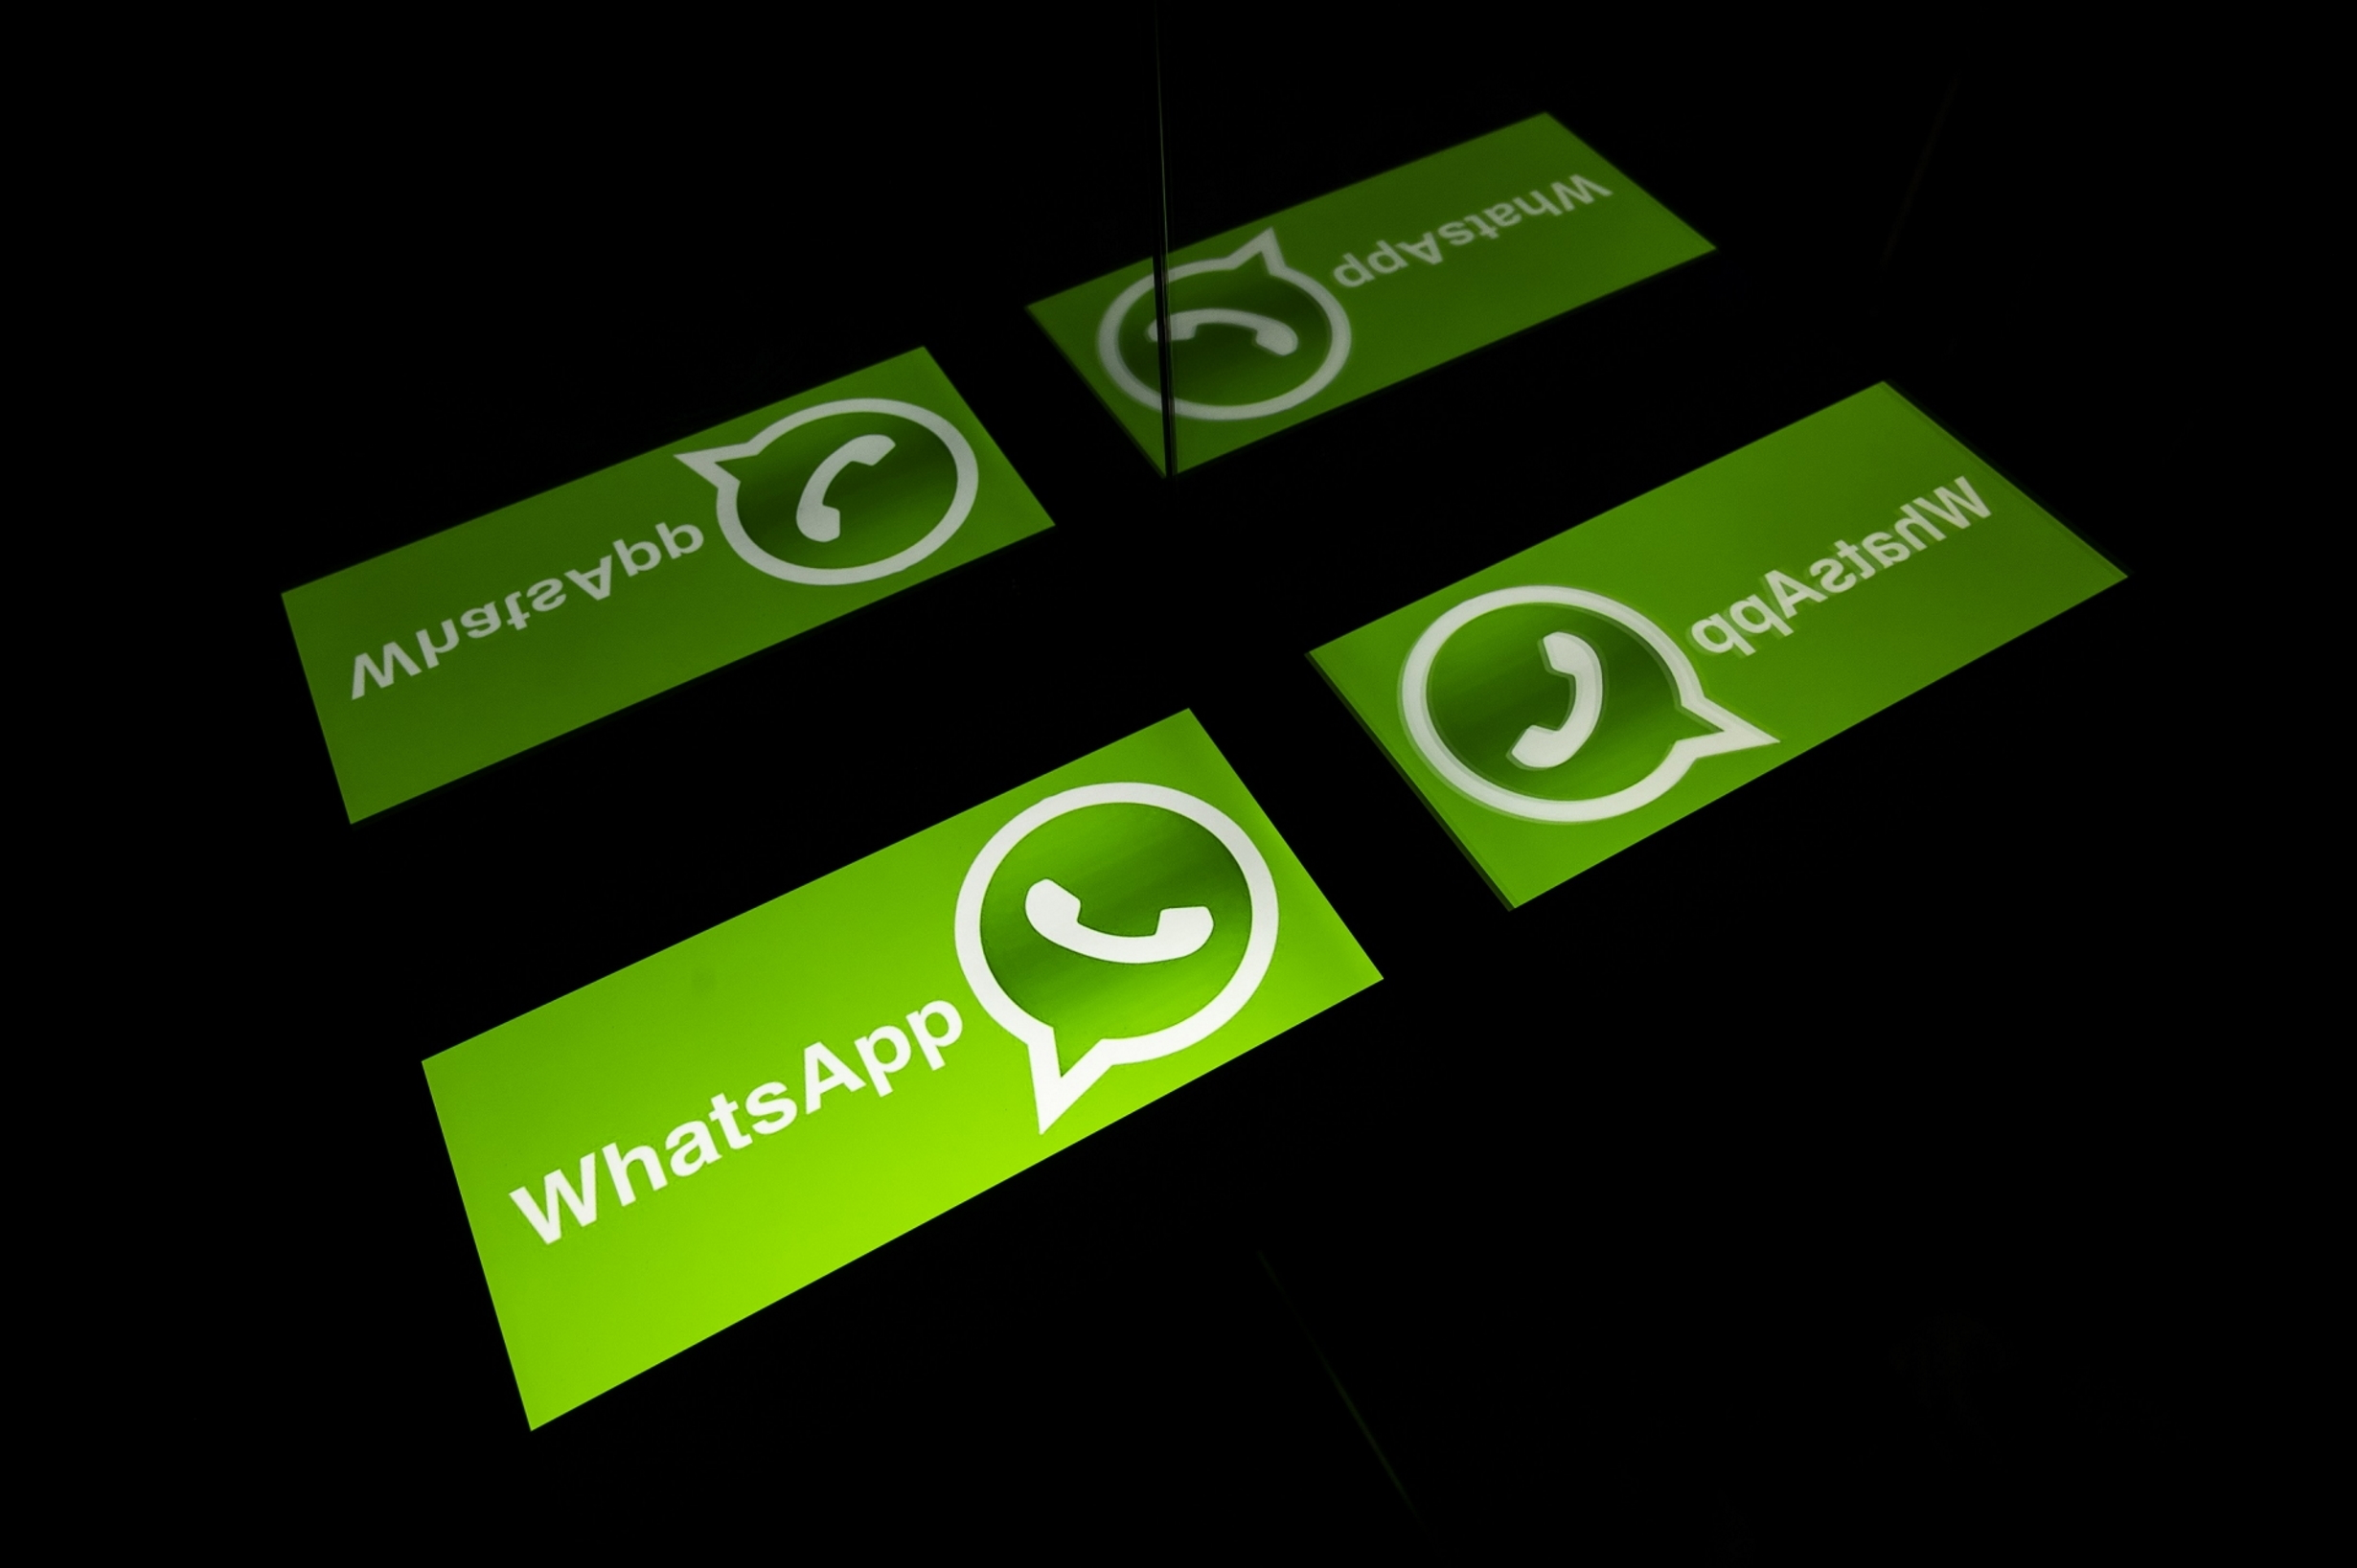 WhatsApp Has Updated Its Terms And Its Rivals Are Reaping The Benefits